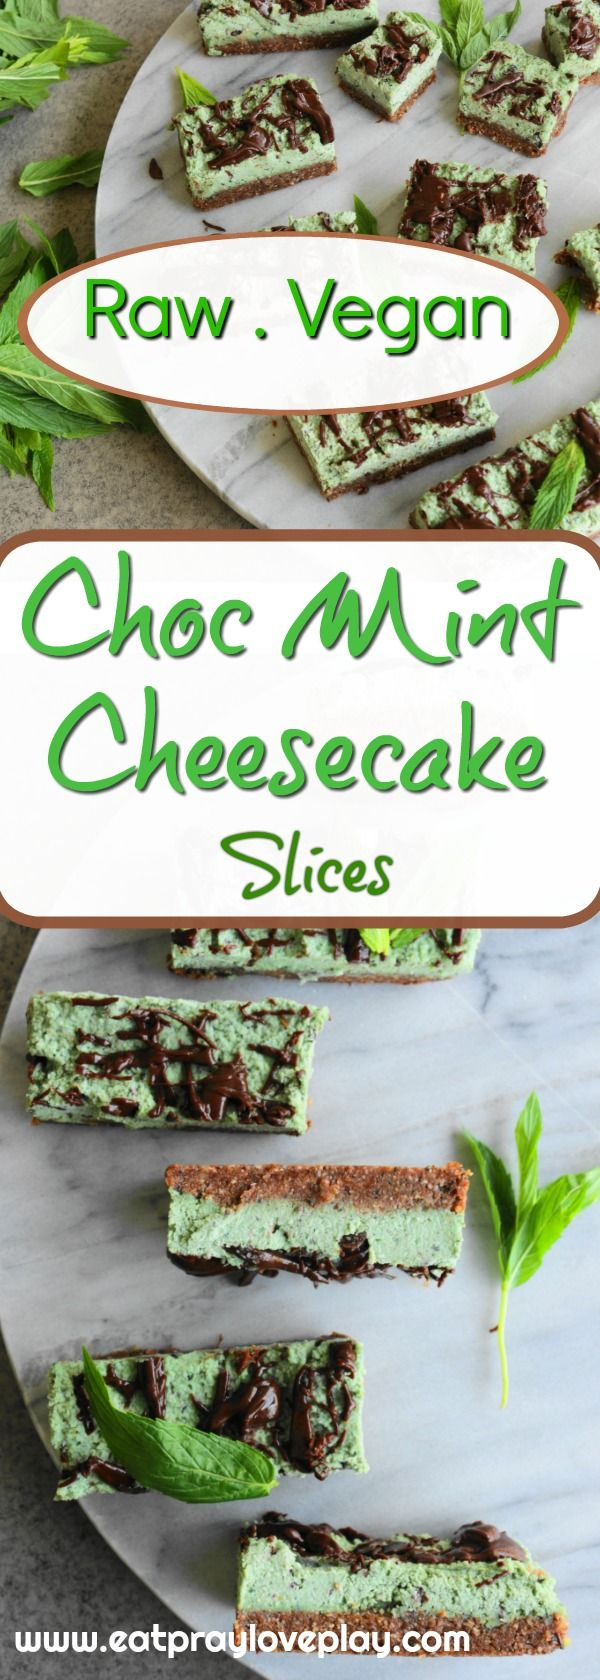 Delicious refined sugar free vegan raw cheesecake which is super simple to make and gorgeously delicious and healthy! #rawvegan #rawcheesecake #veganrecipes #chocmint